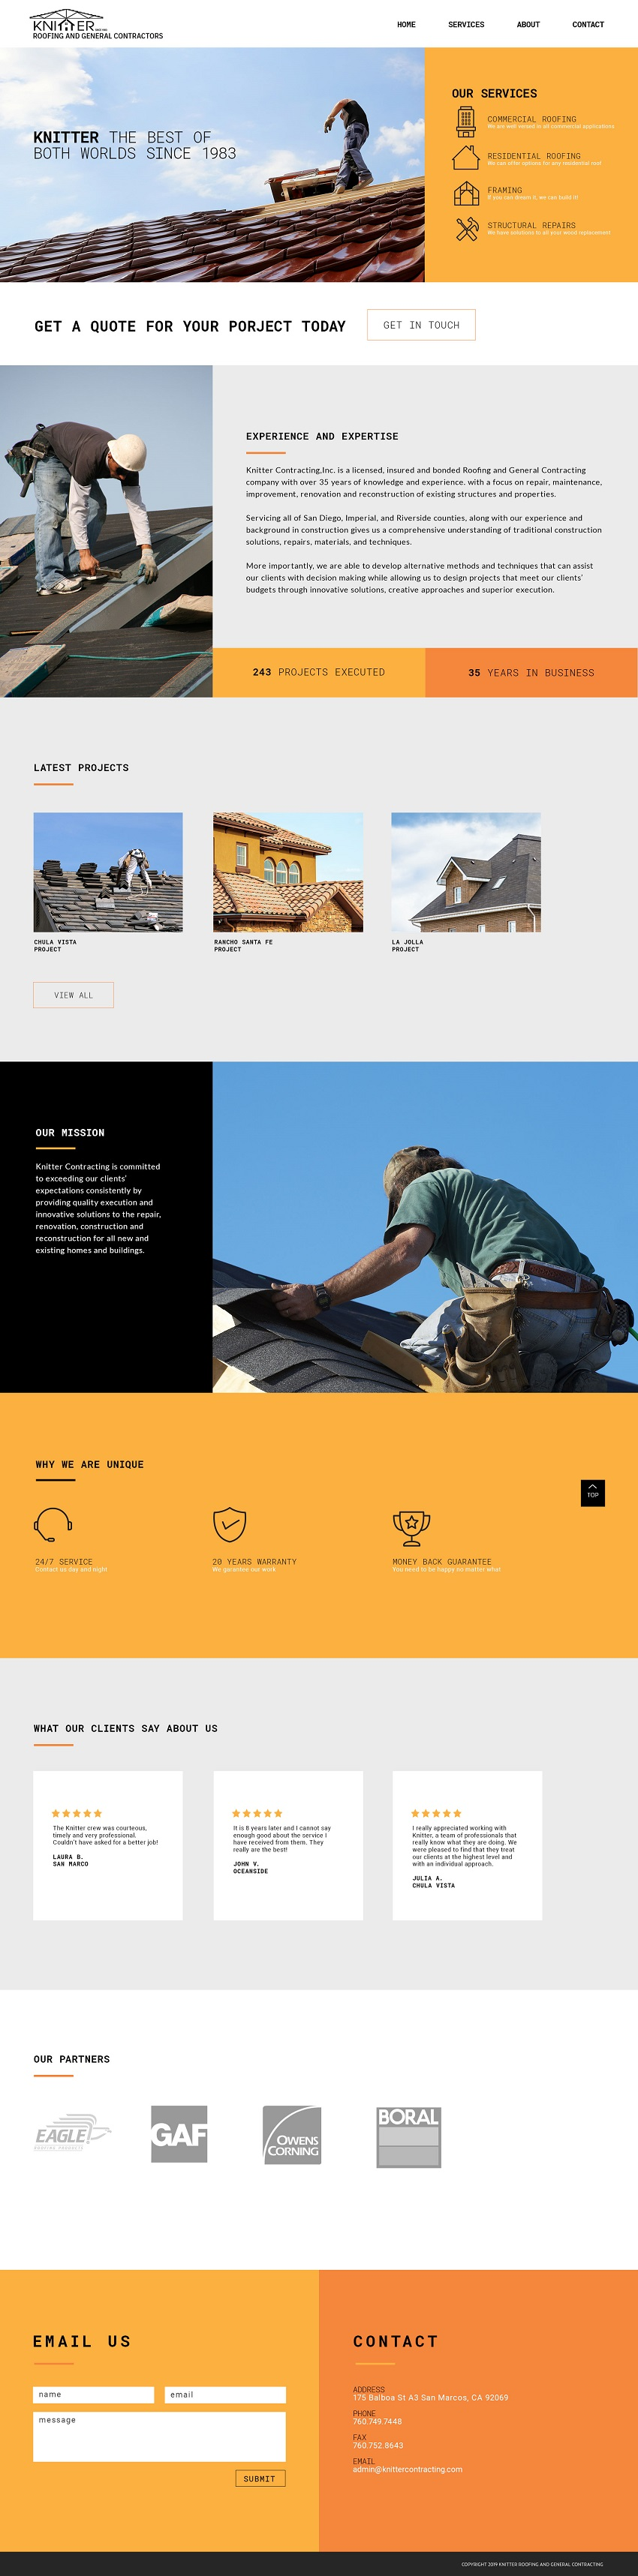 Image of Knitter Contracting website design